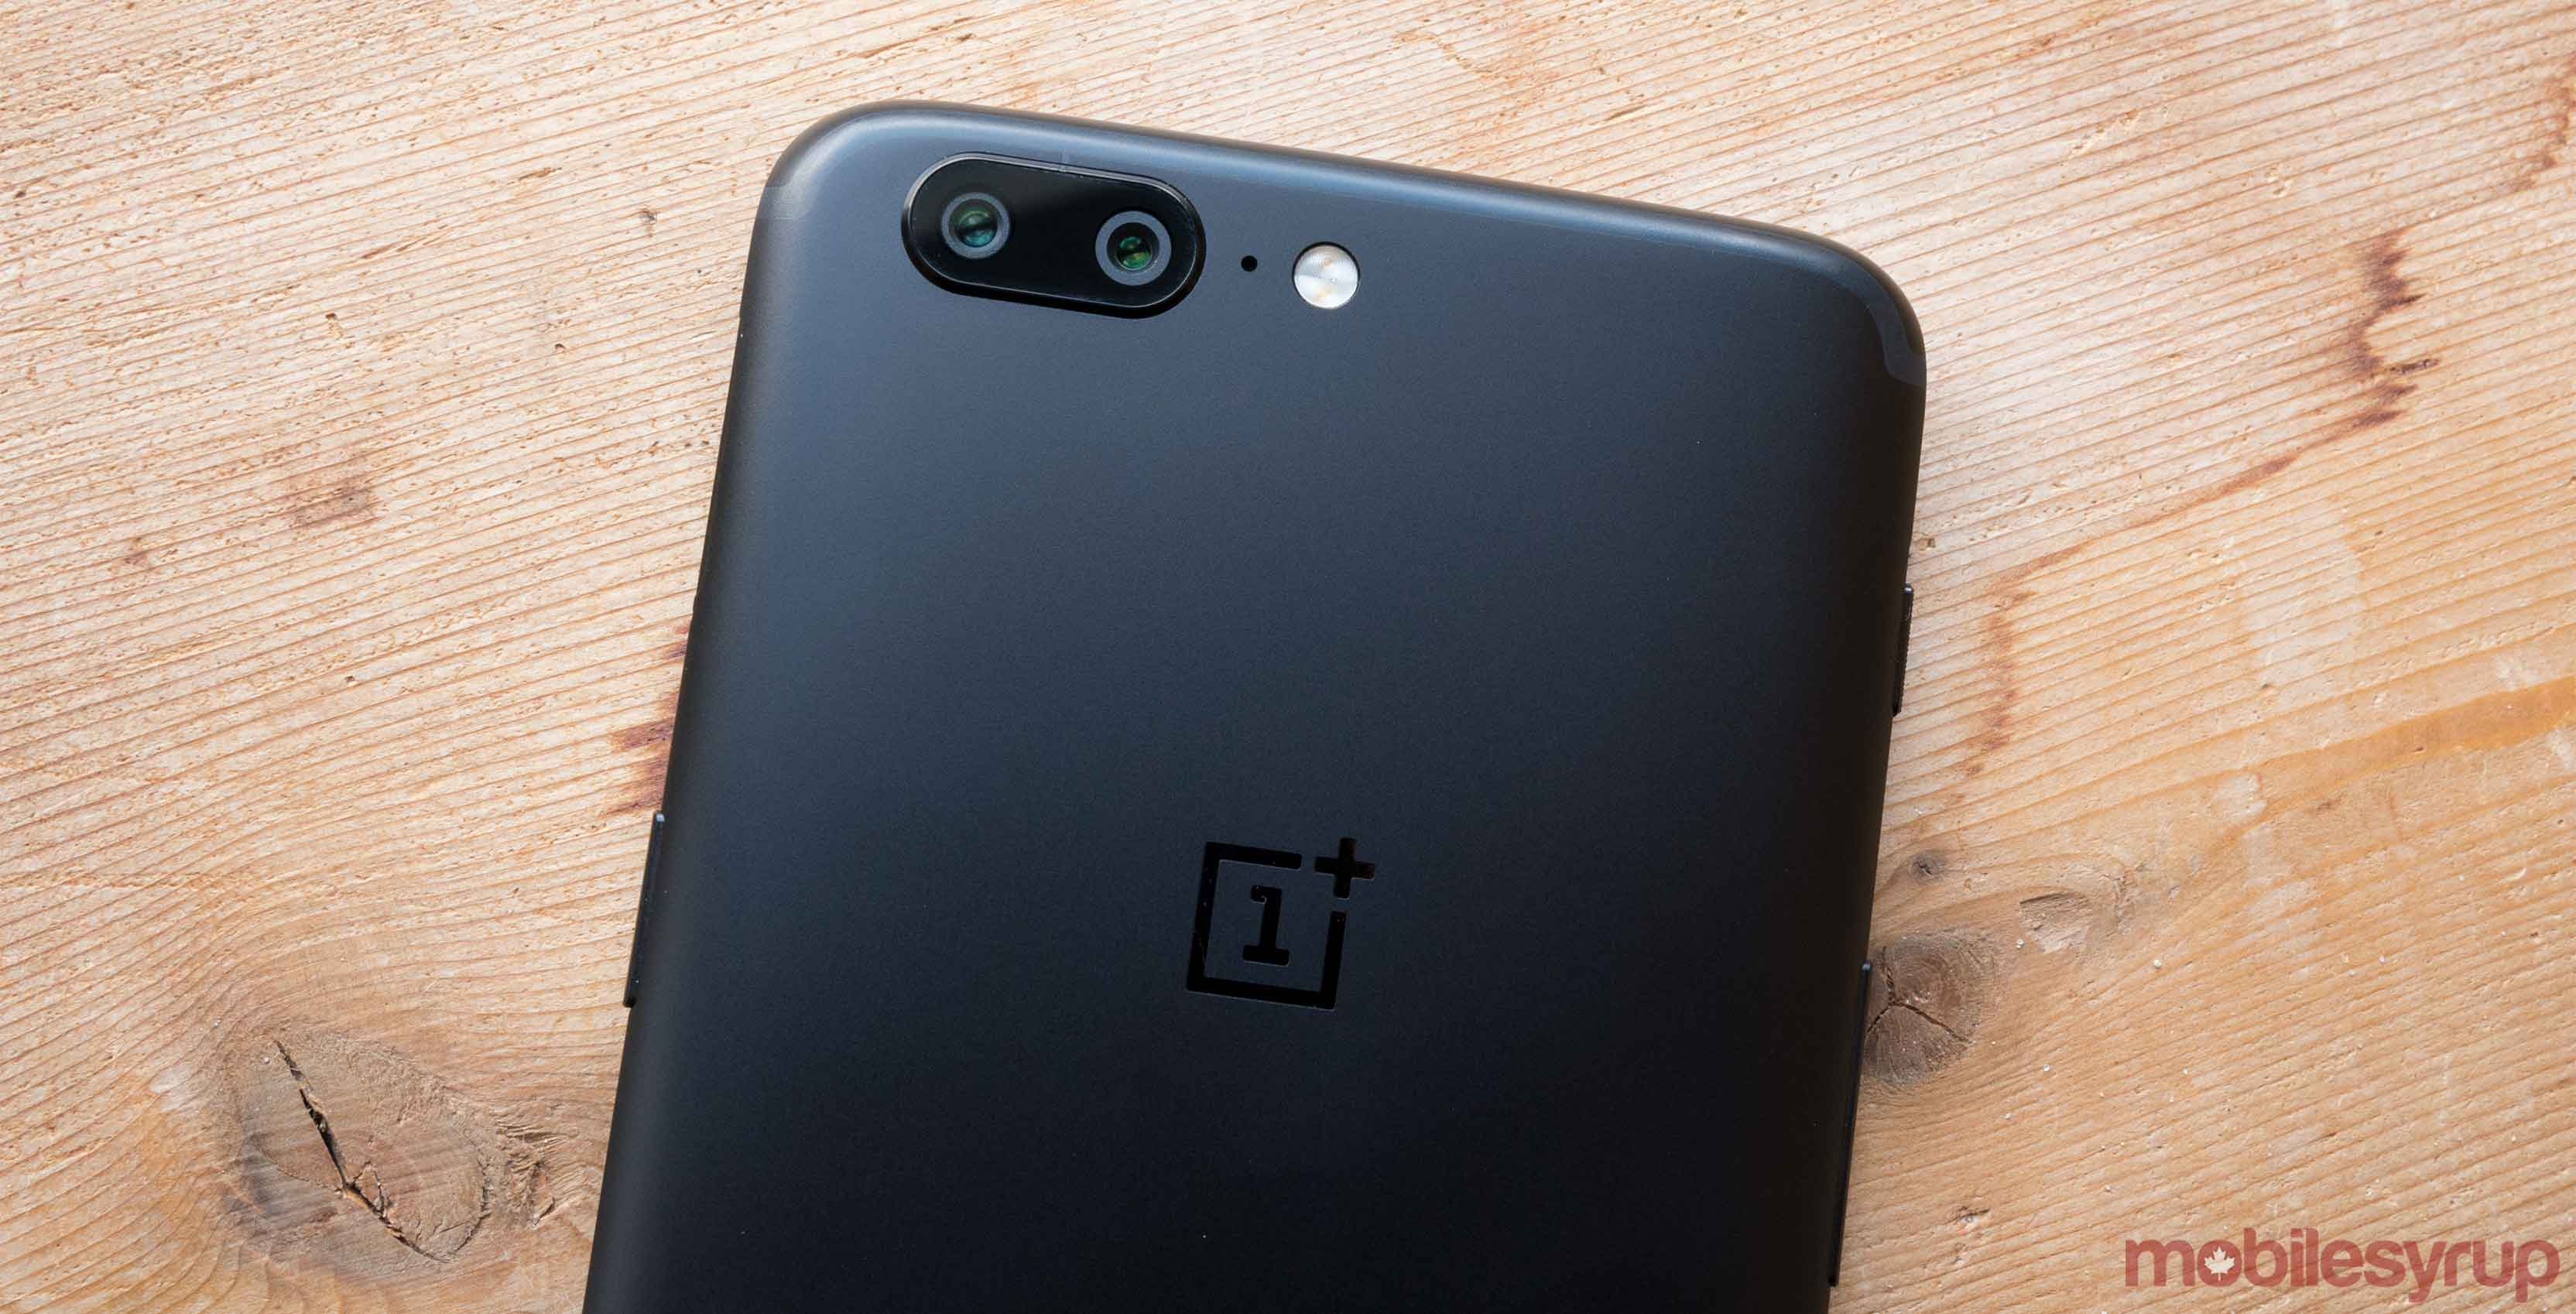 Oneplus 5 canadian pricing and availability oneplus follow up to the popular oneplus 3 and oneplus 3t the oneplus 5 has arrived and it comes bearing a variety of new features solutioingenieria Images